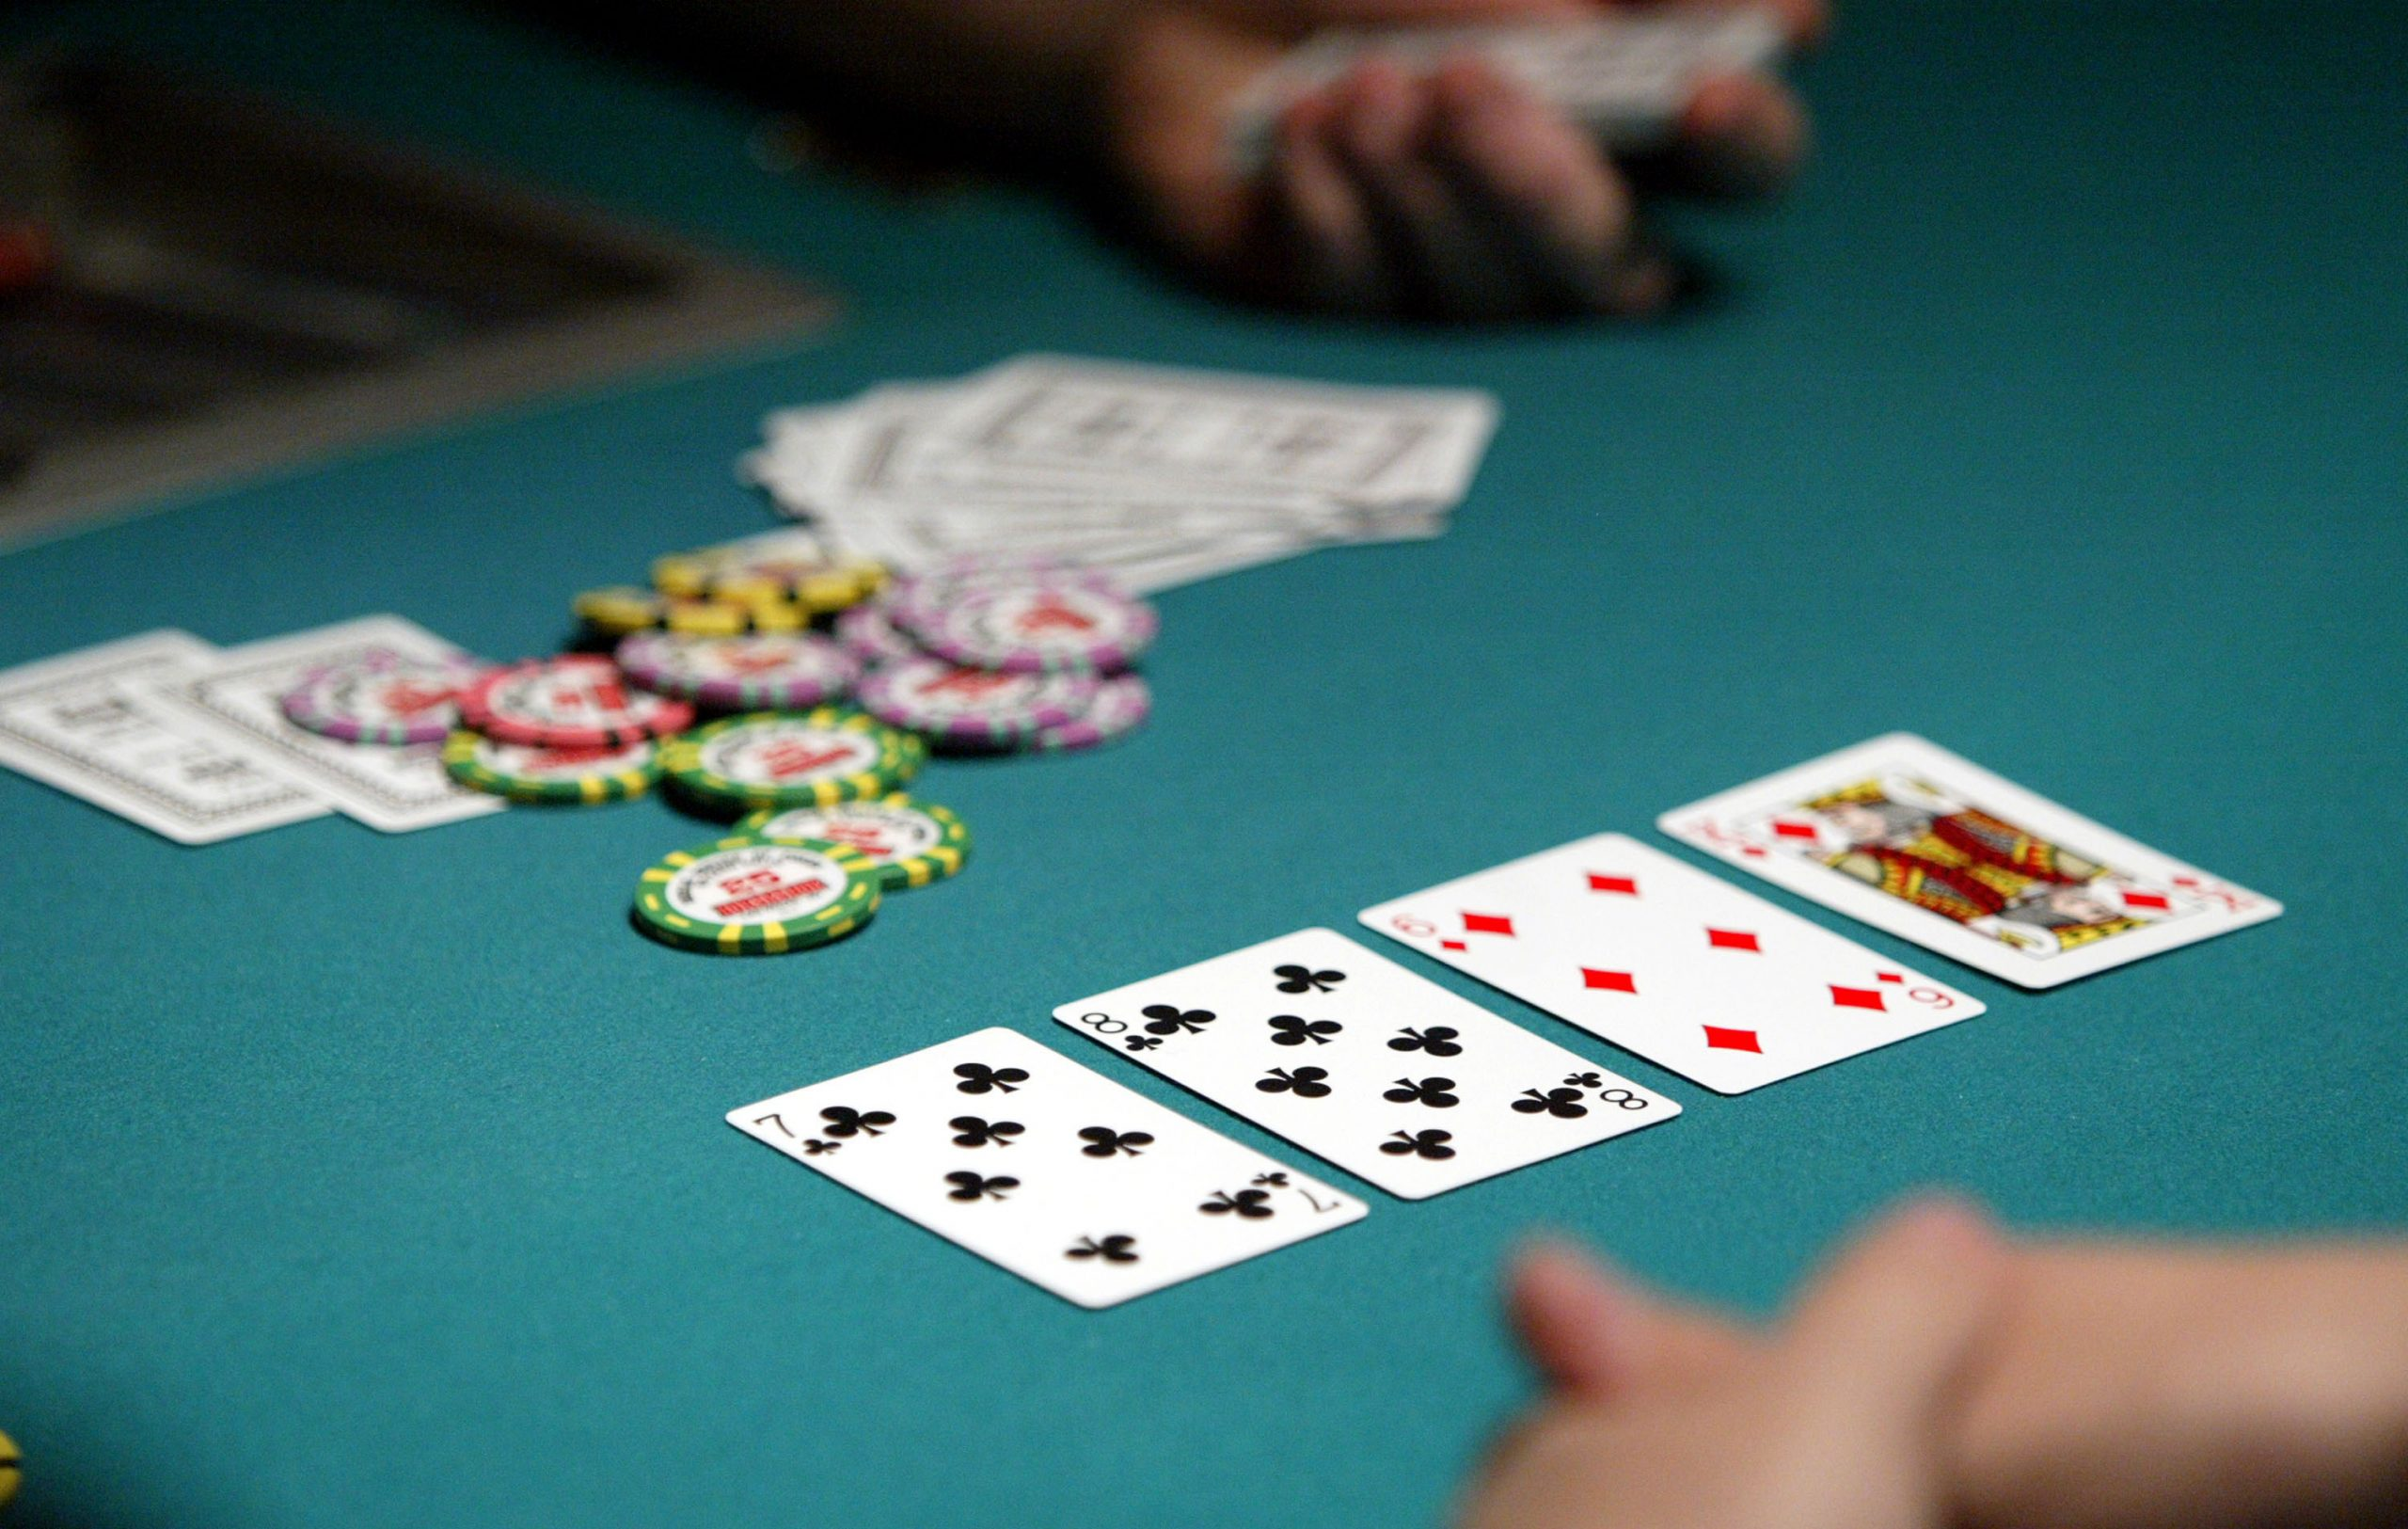 Play poker games to enjoy the rewards which are offered daily.